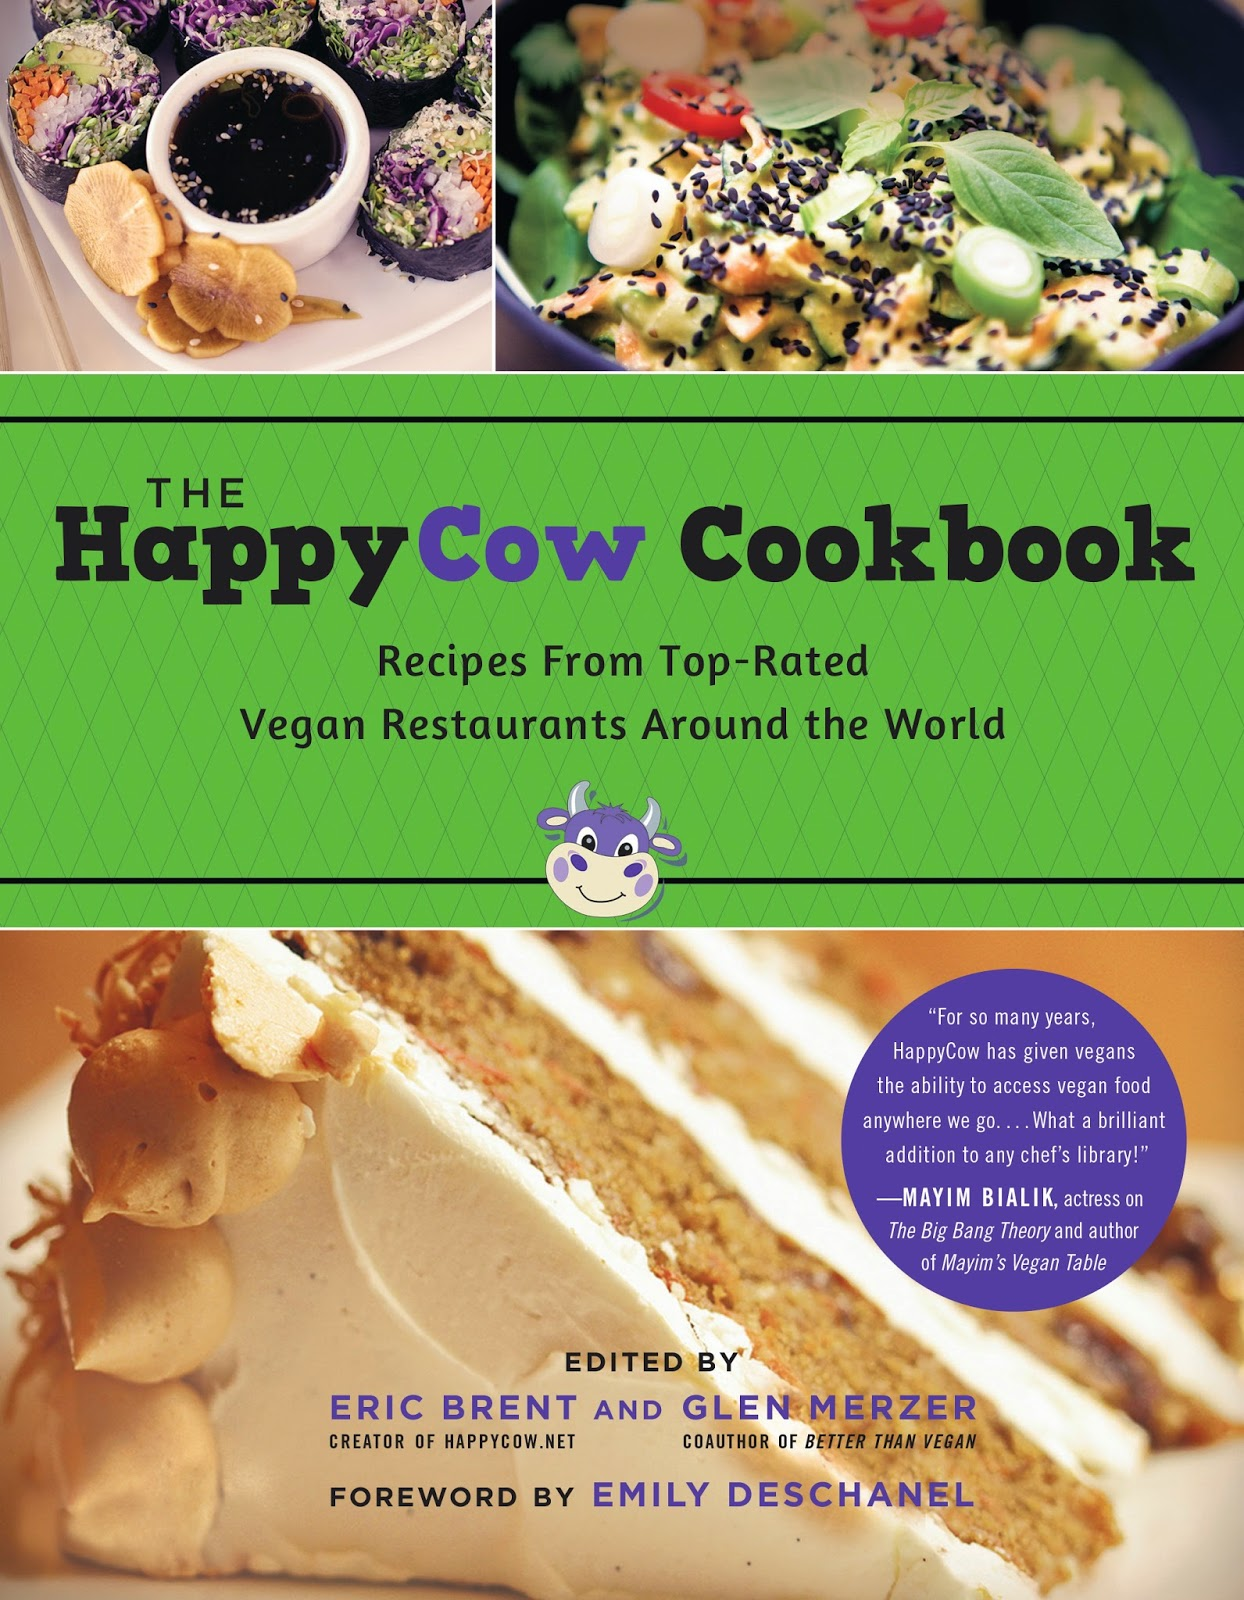 The HappyCow Cookbook (#Vegan)